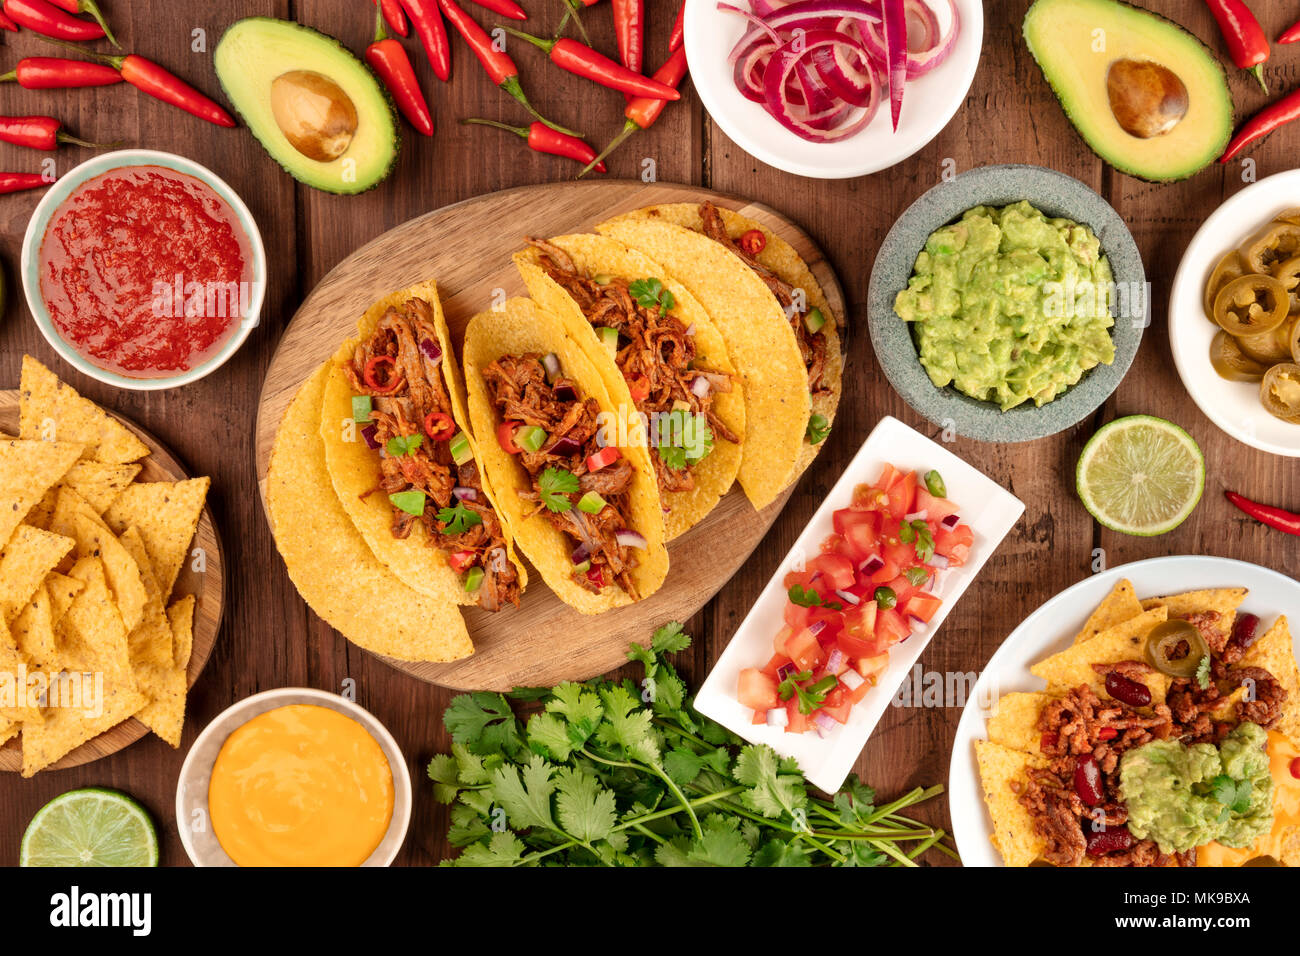 An overhead photo of an ssortment of many different Mexican tapas, including tacos, guacamole, pico de gallo, nachos and others - Stock Image